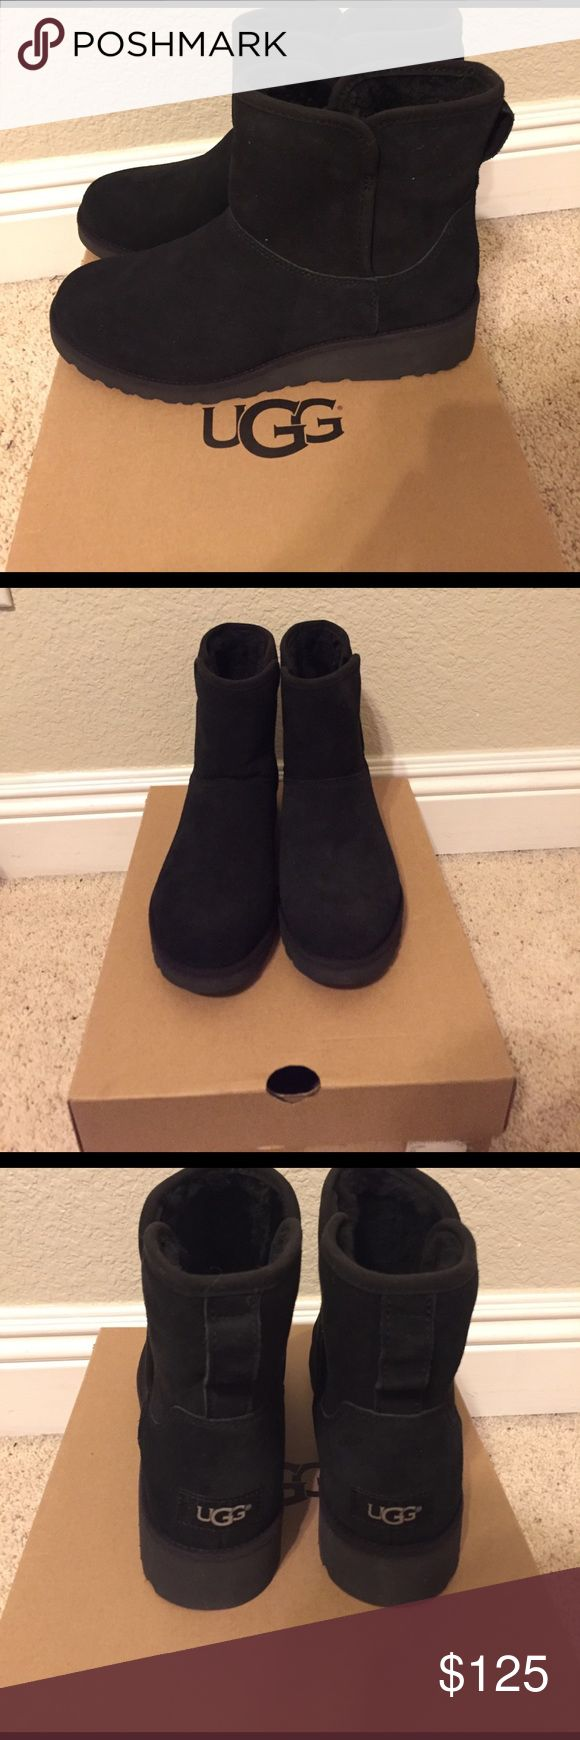 NEW! UGG Kristin Mini Boots in women's size 7! NEW! UGG Kristin Mini Black Boots in women's size 7! These are in excellent condition. Brand new and never worn before! They retail full price at Nordstrom and UGG website. Box is included. UGG Shoes